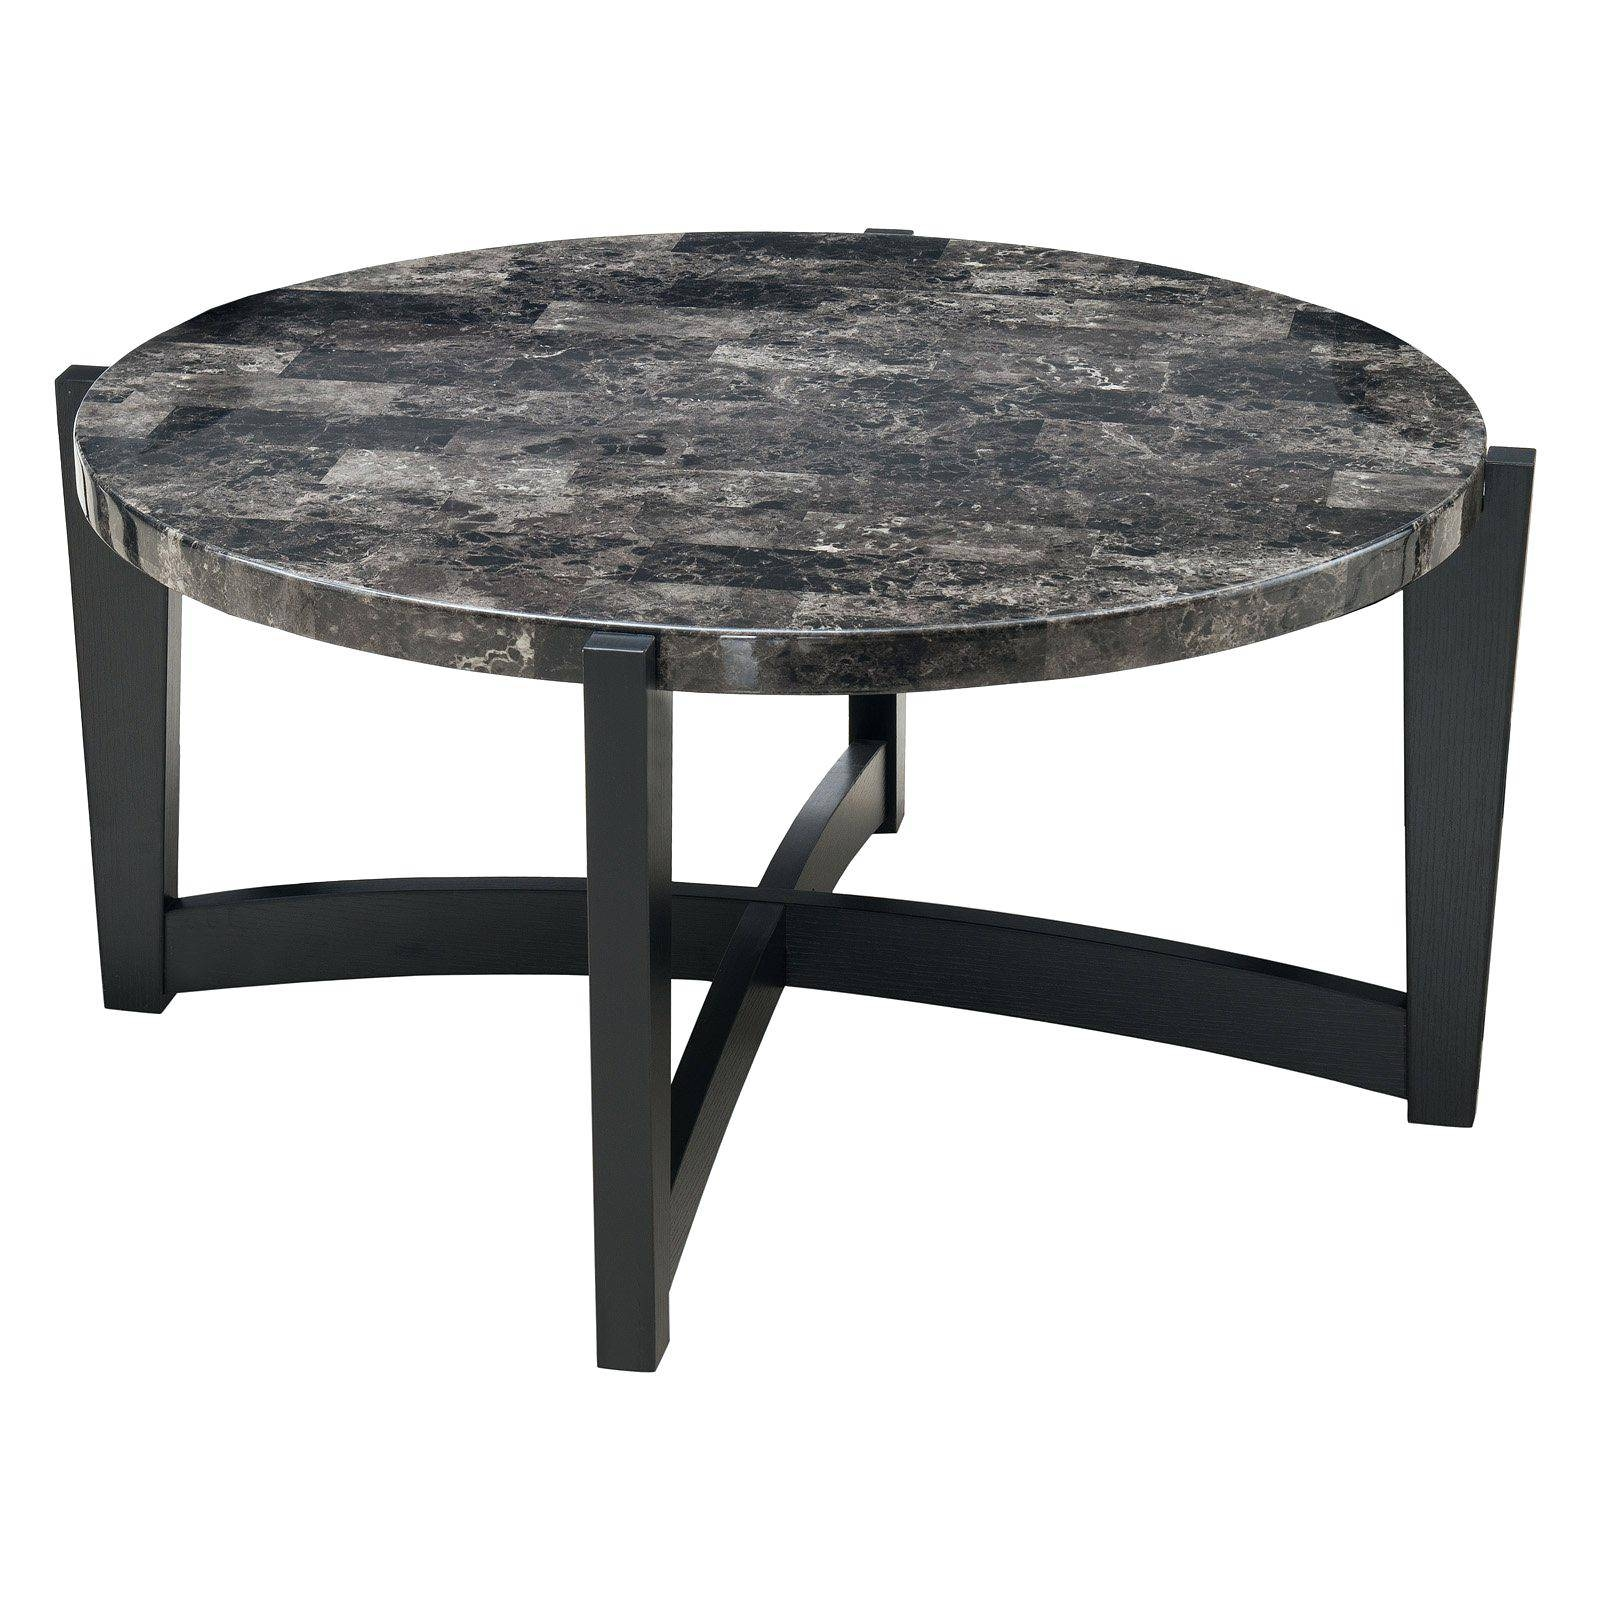 Coffee Table ~ Oblong Coffee Tables Addictsrectangular Black Glass regarding Dark Glass Coffee Tables (Image 13 of 30)